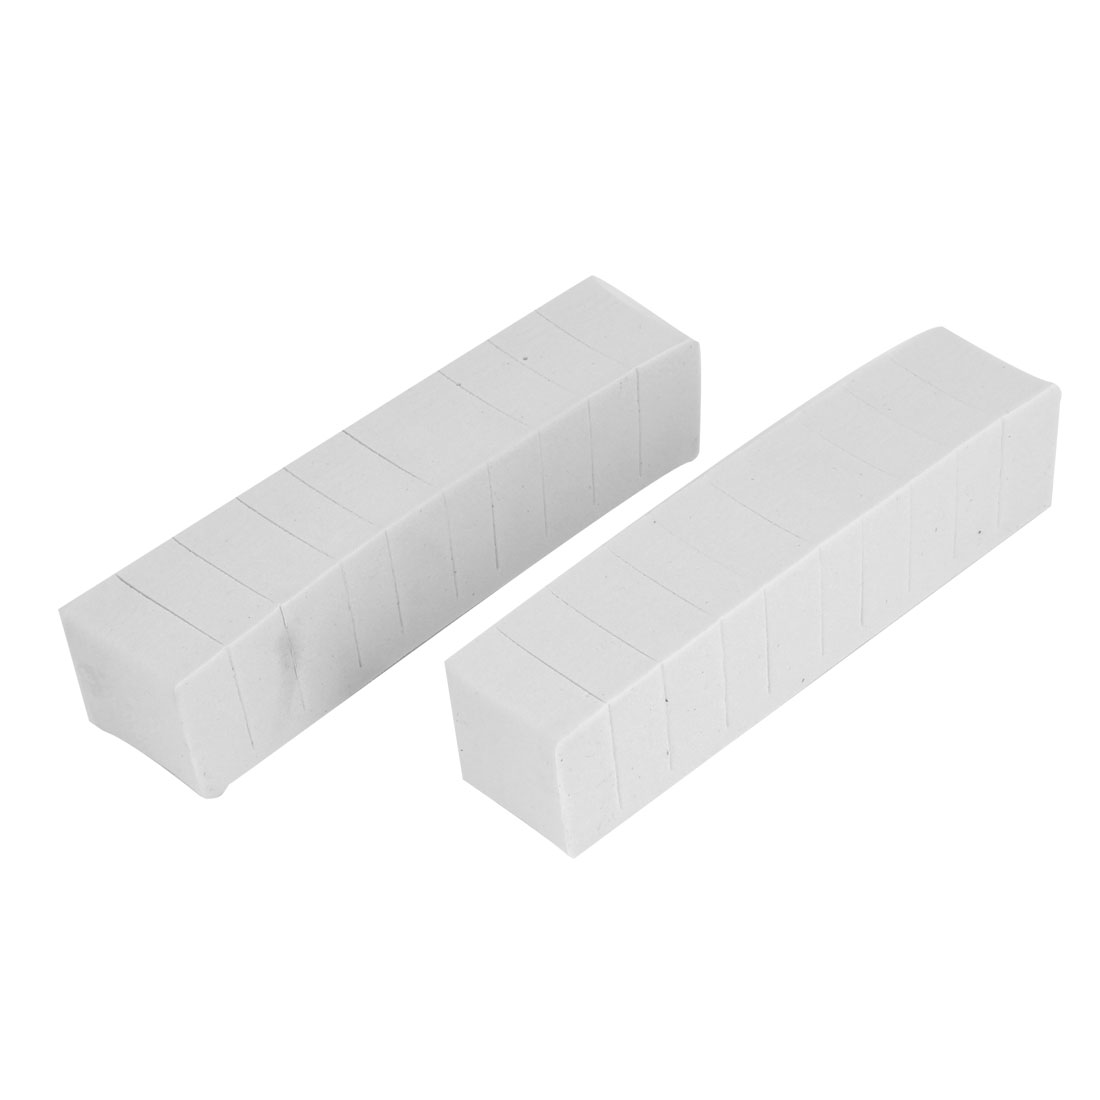 2 Pcs Adhesive Back White Foam Door Guard Protectors Bar Sticker for Car